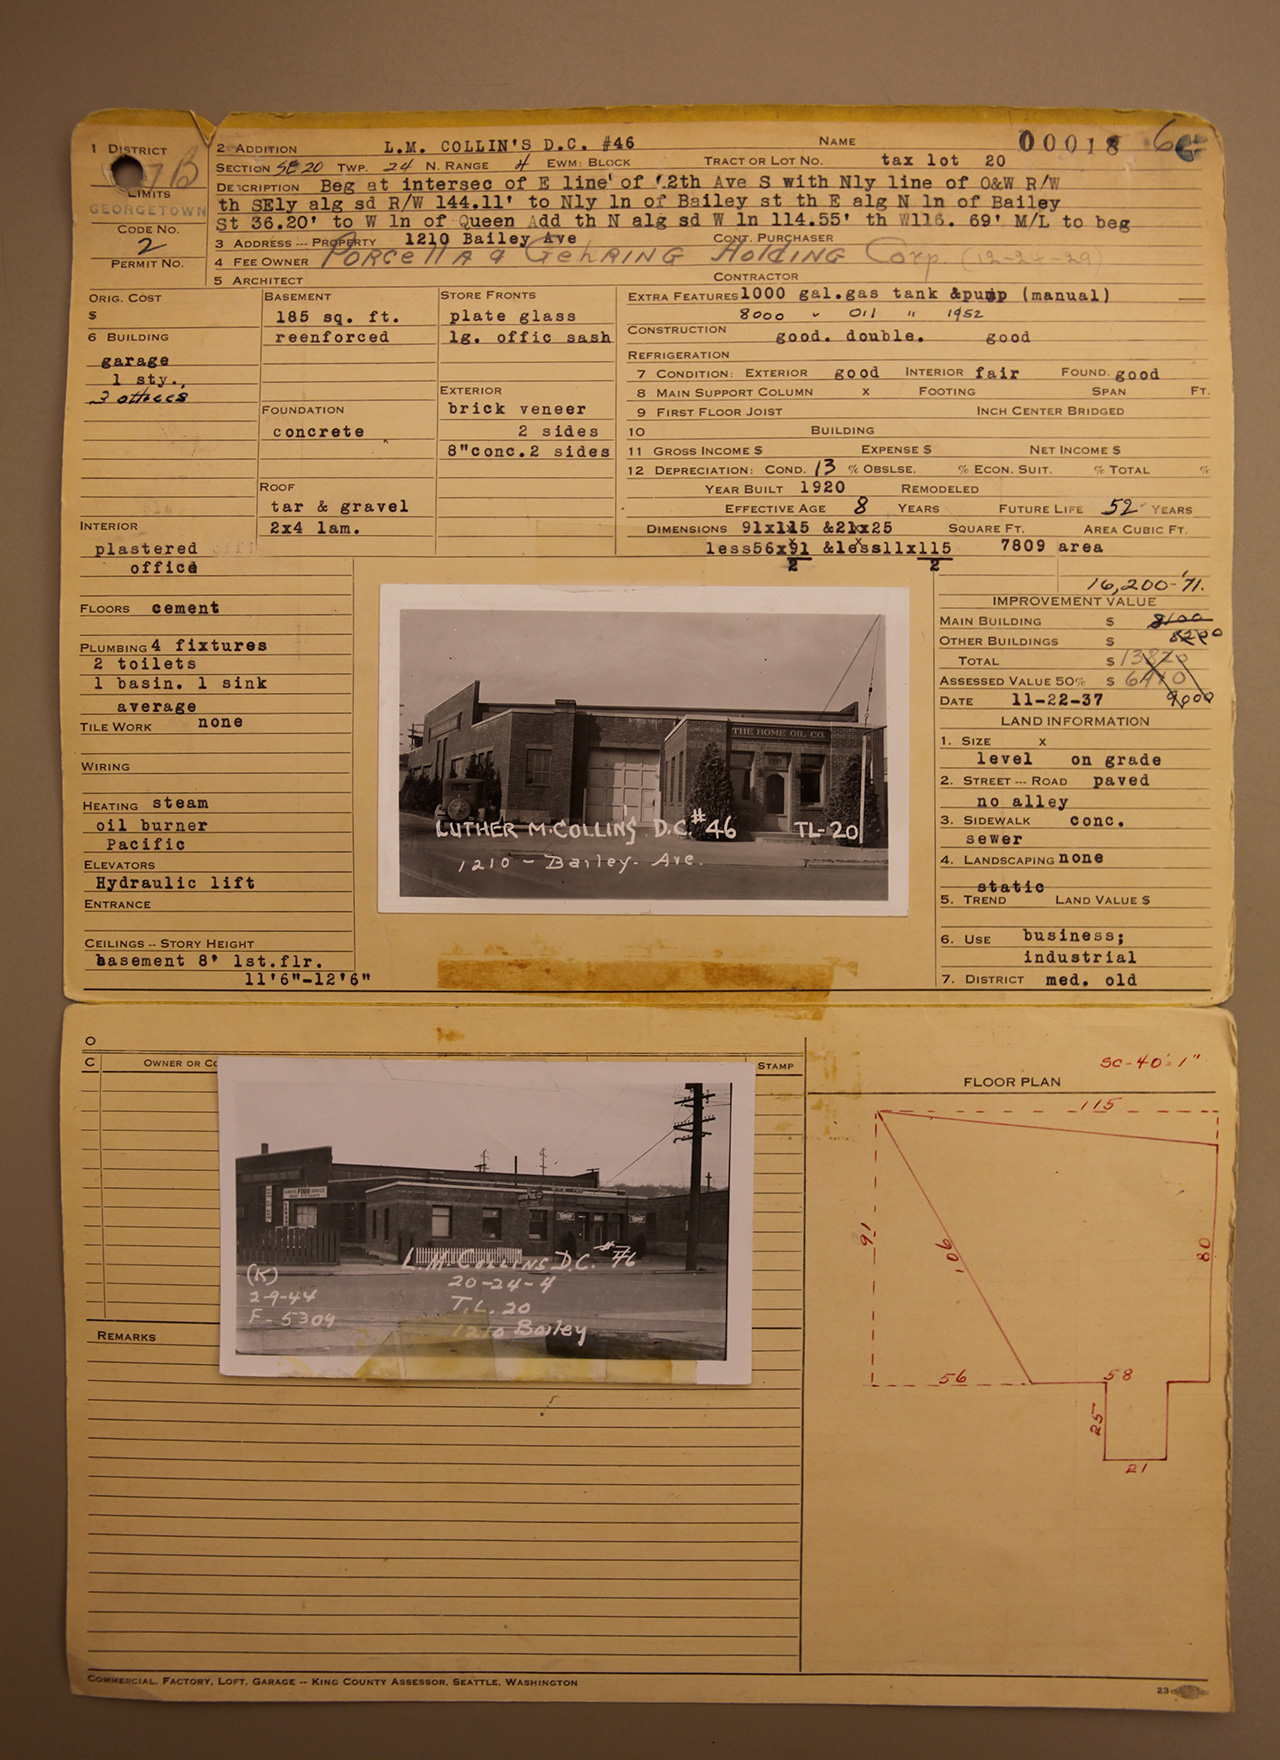 Original documents showing use by G. Porchella & Co.